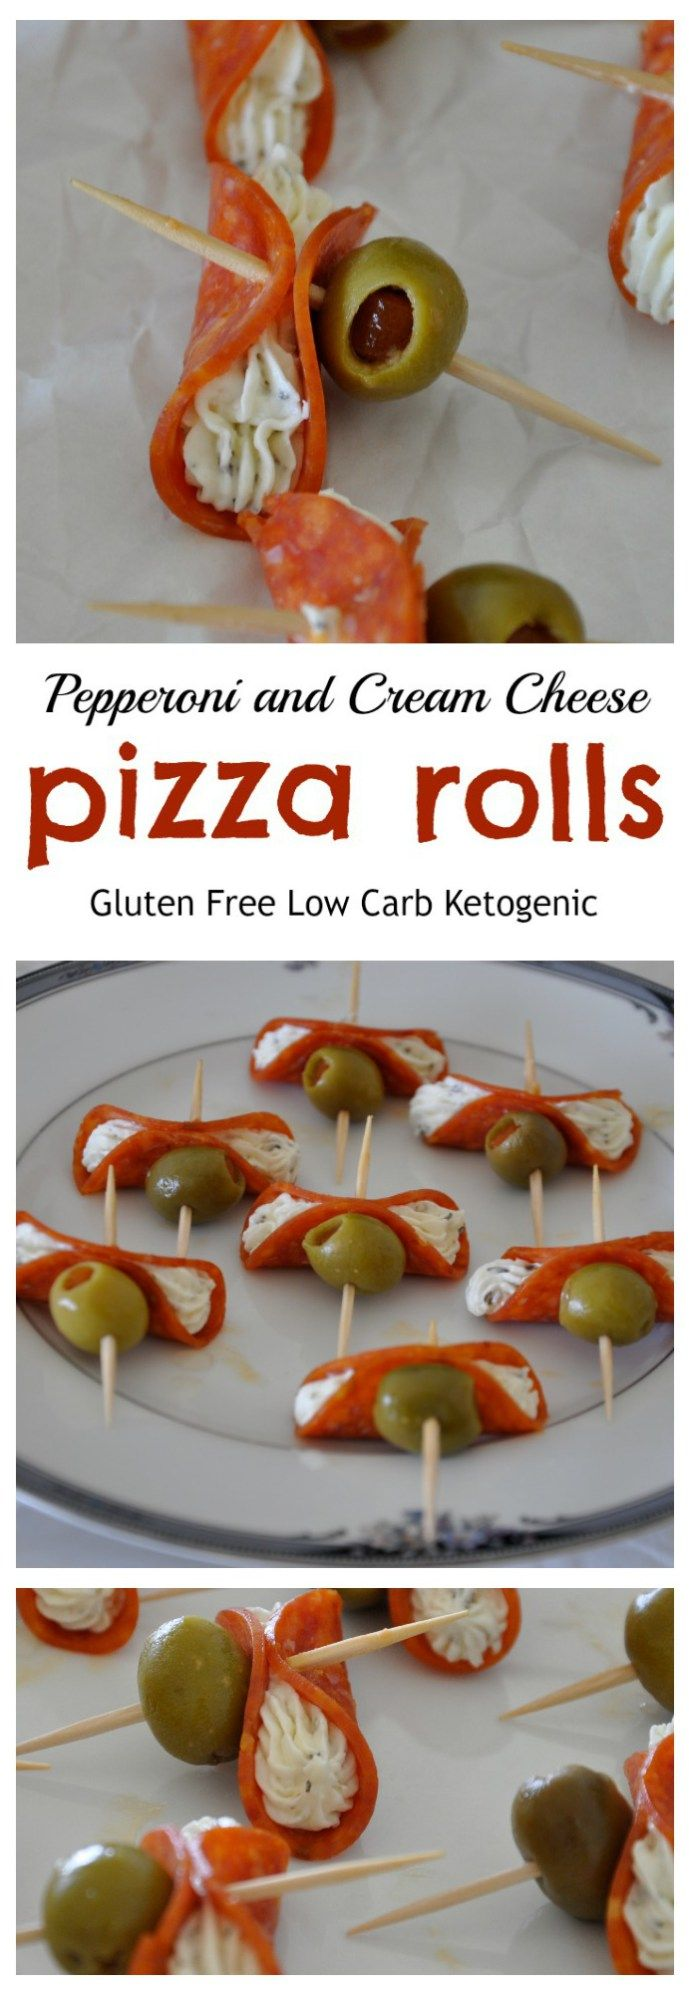 Pepperoni and Cream Cheese Pizza Rolls - Gluten Free, Low Carb from knowgluten.me